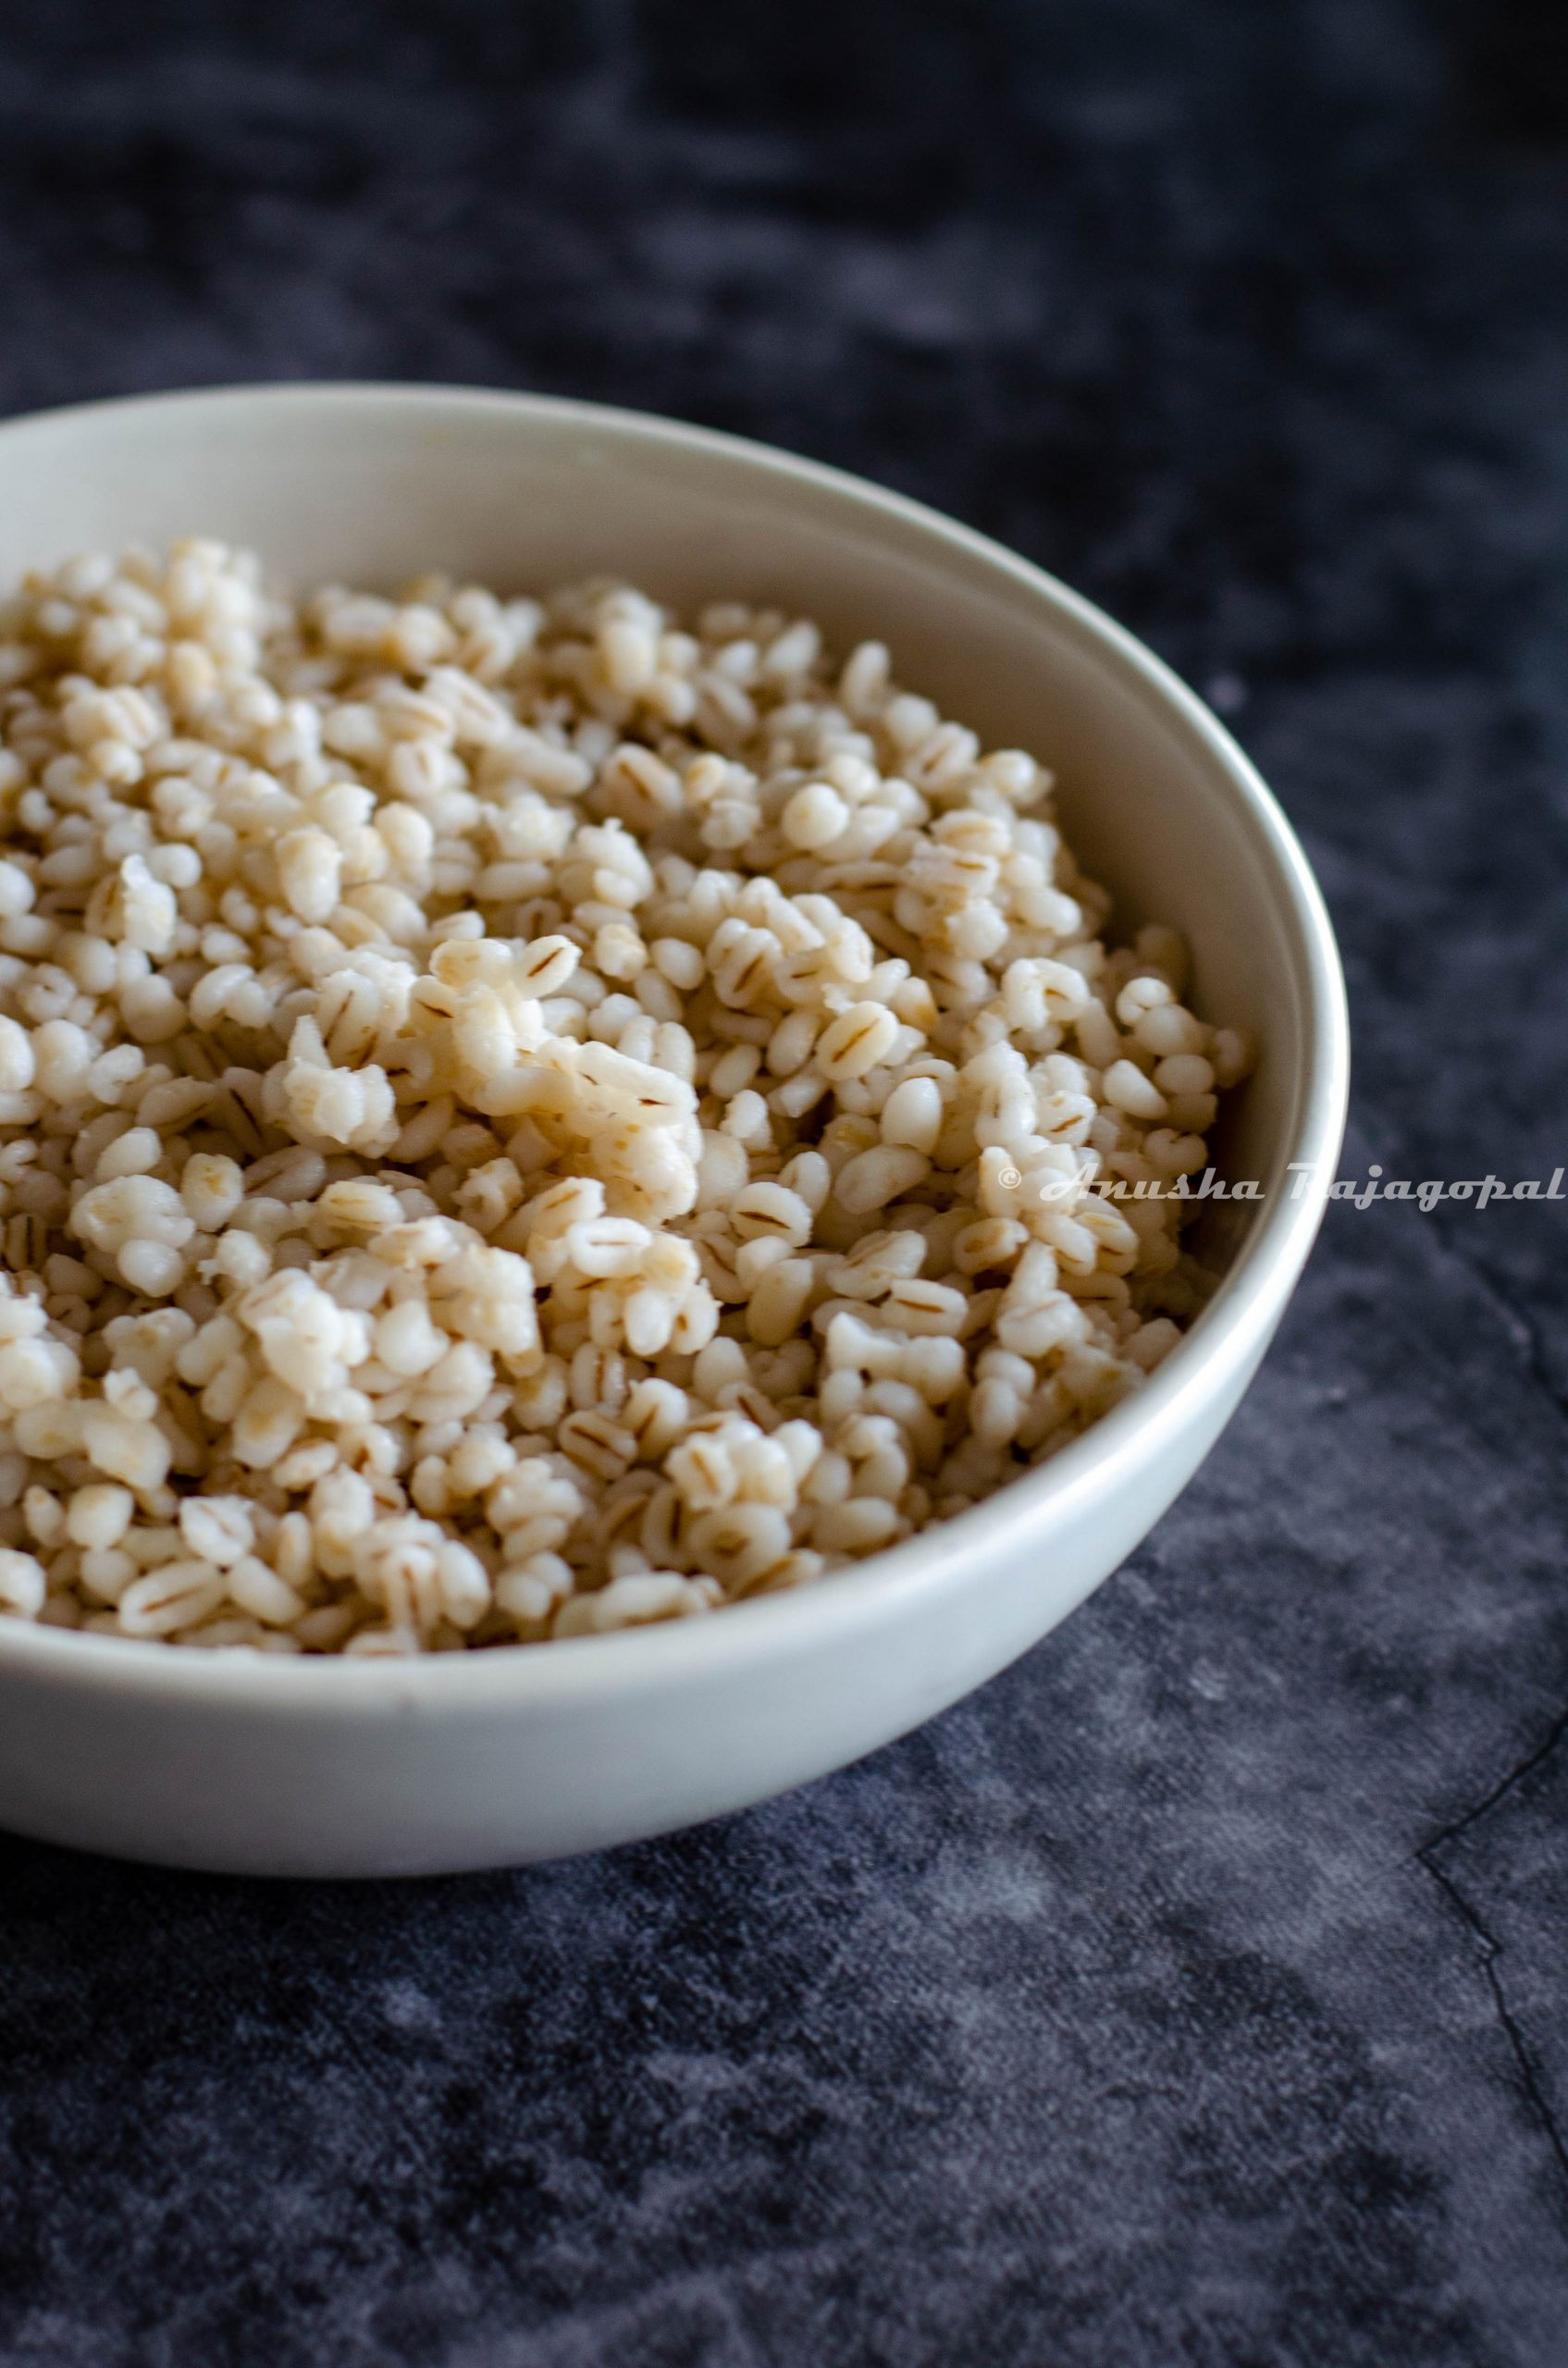 pearl barley cooked in instant pot and served in a white bowl placed over a grey backdrop